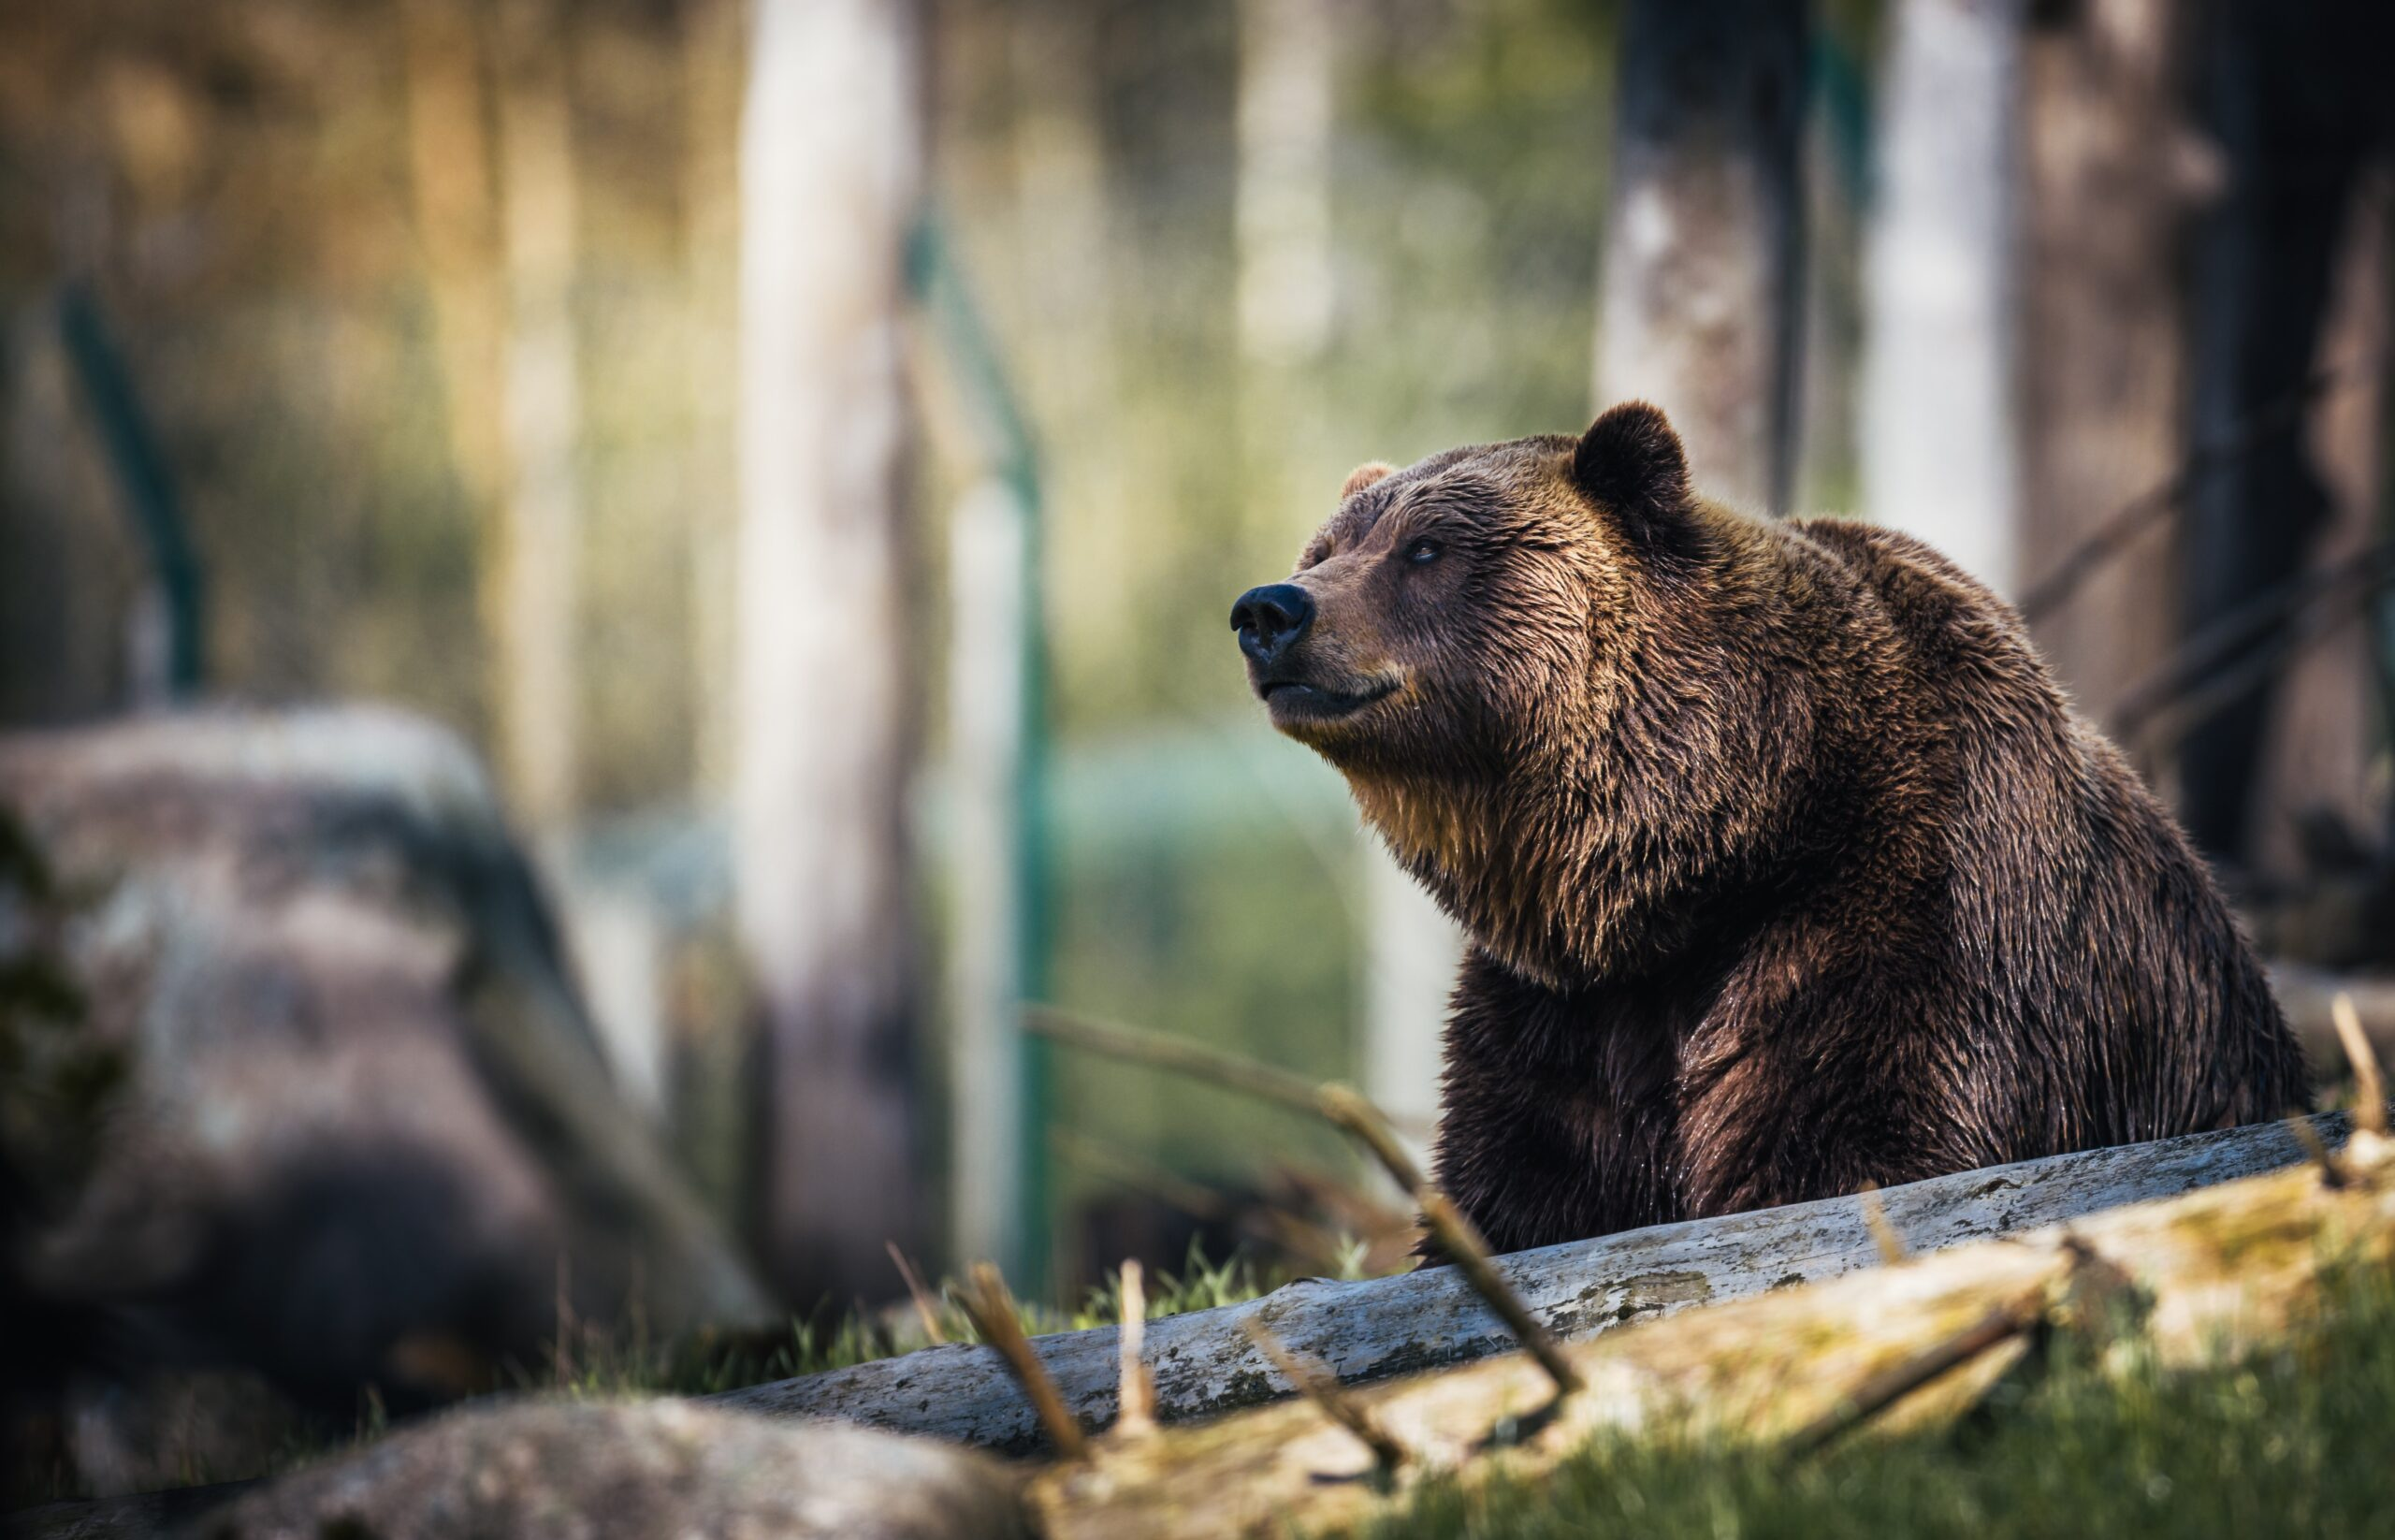 proforestation: A brown bear rests in a forest